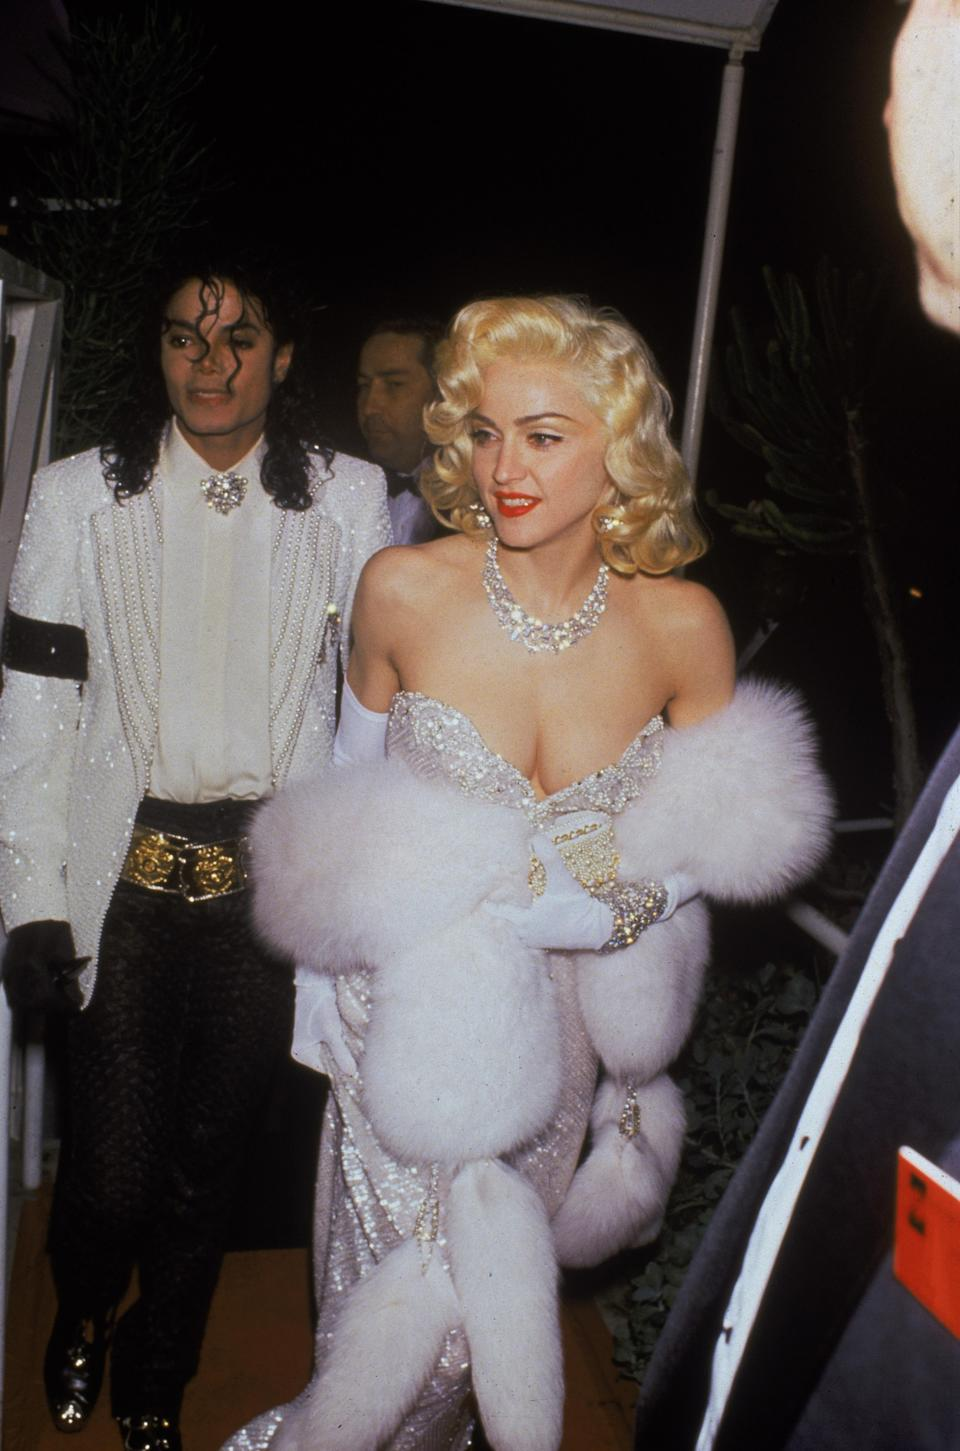 This photo of Madonna attending the 1991 Oscars with Michael Jackson has to be one of the most iconic red carpet snaps of all time. The singer was clad in a diamond-encrusted Bob Mackie dress, thought to be worth $20 million.